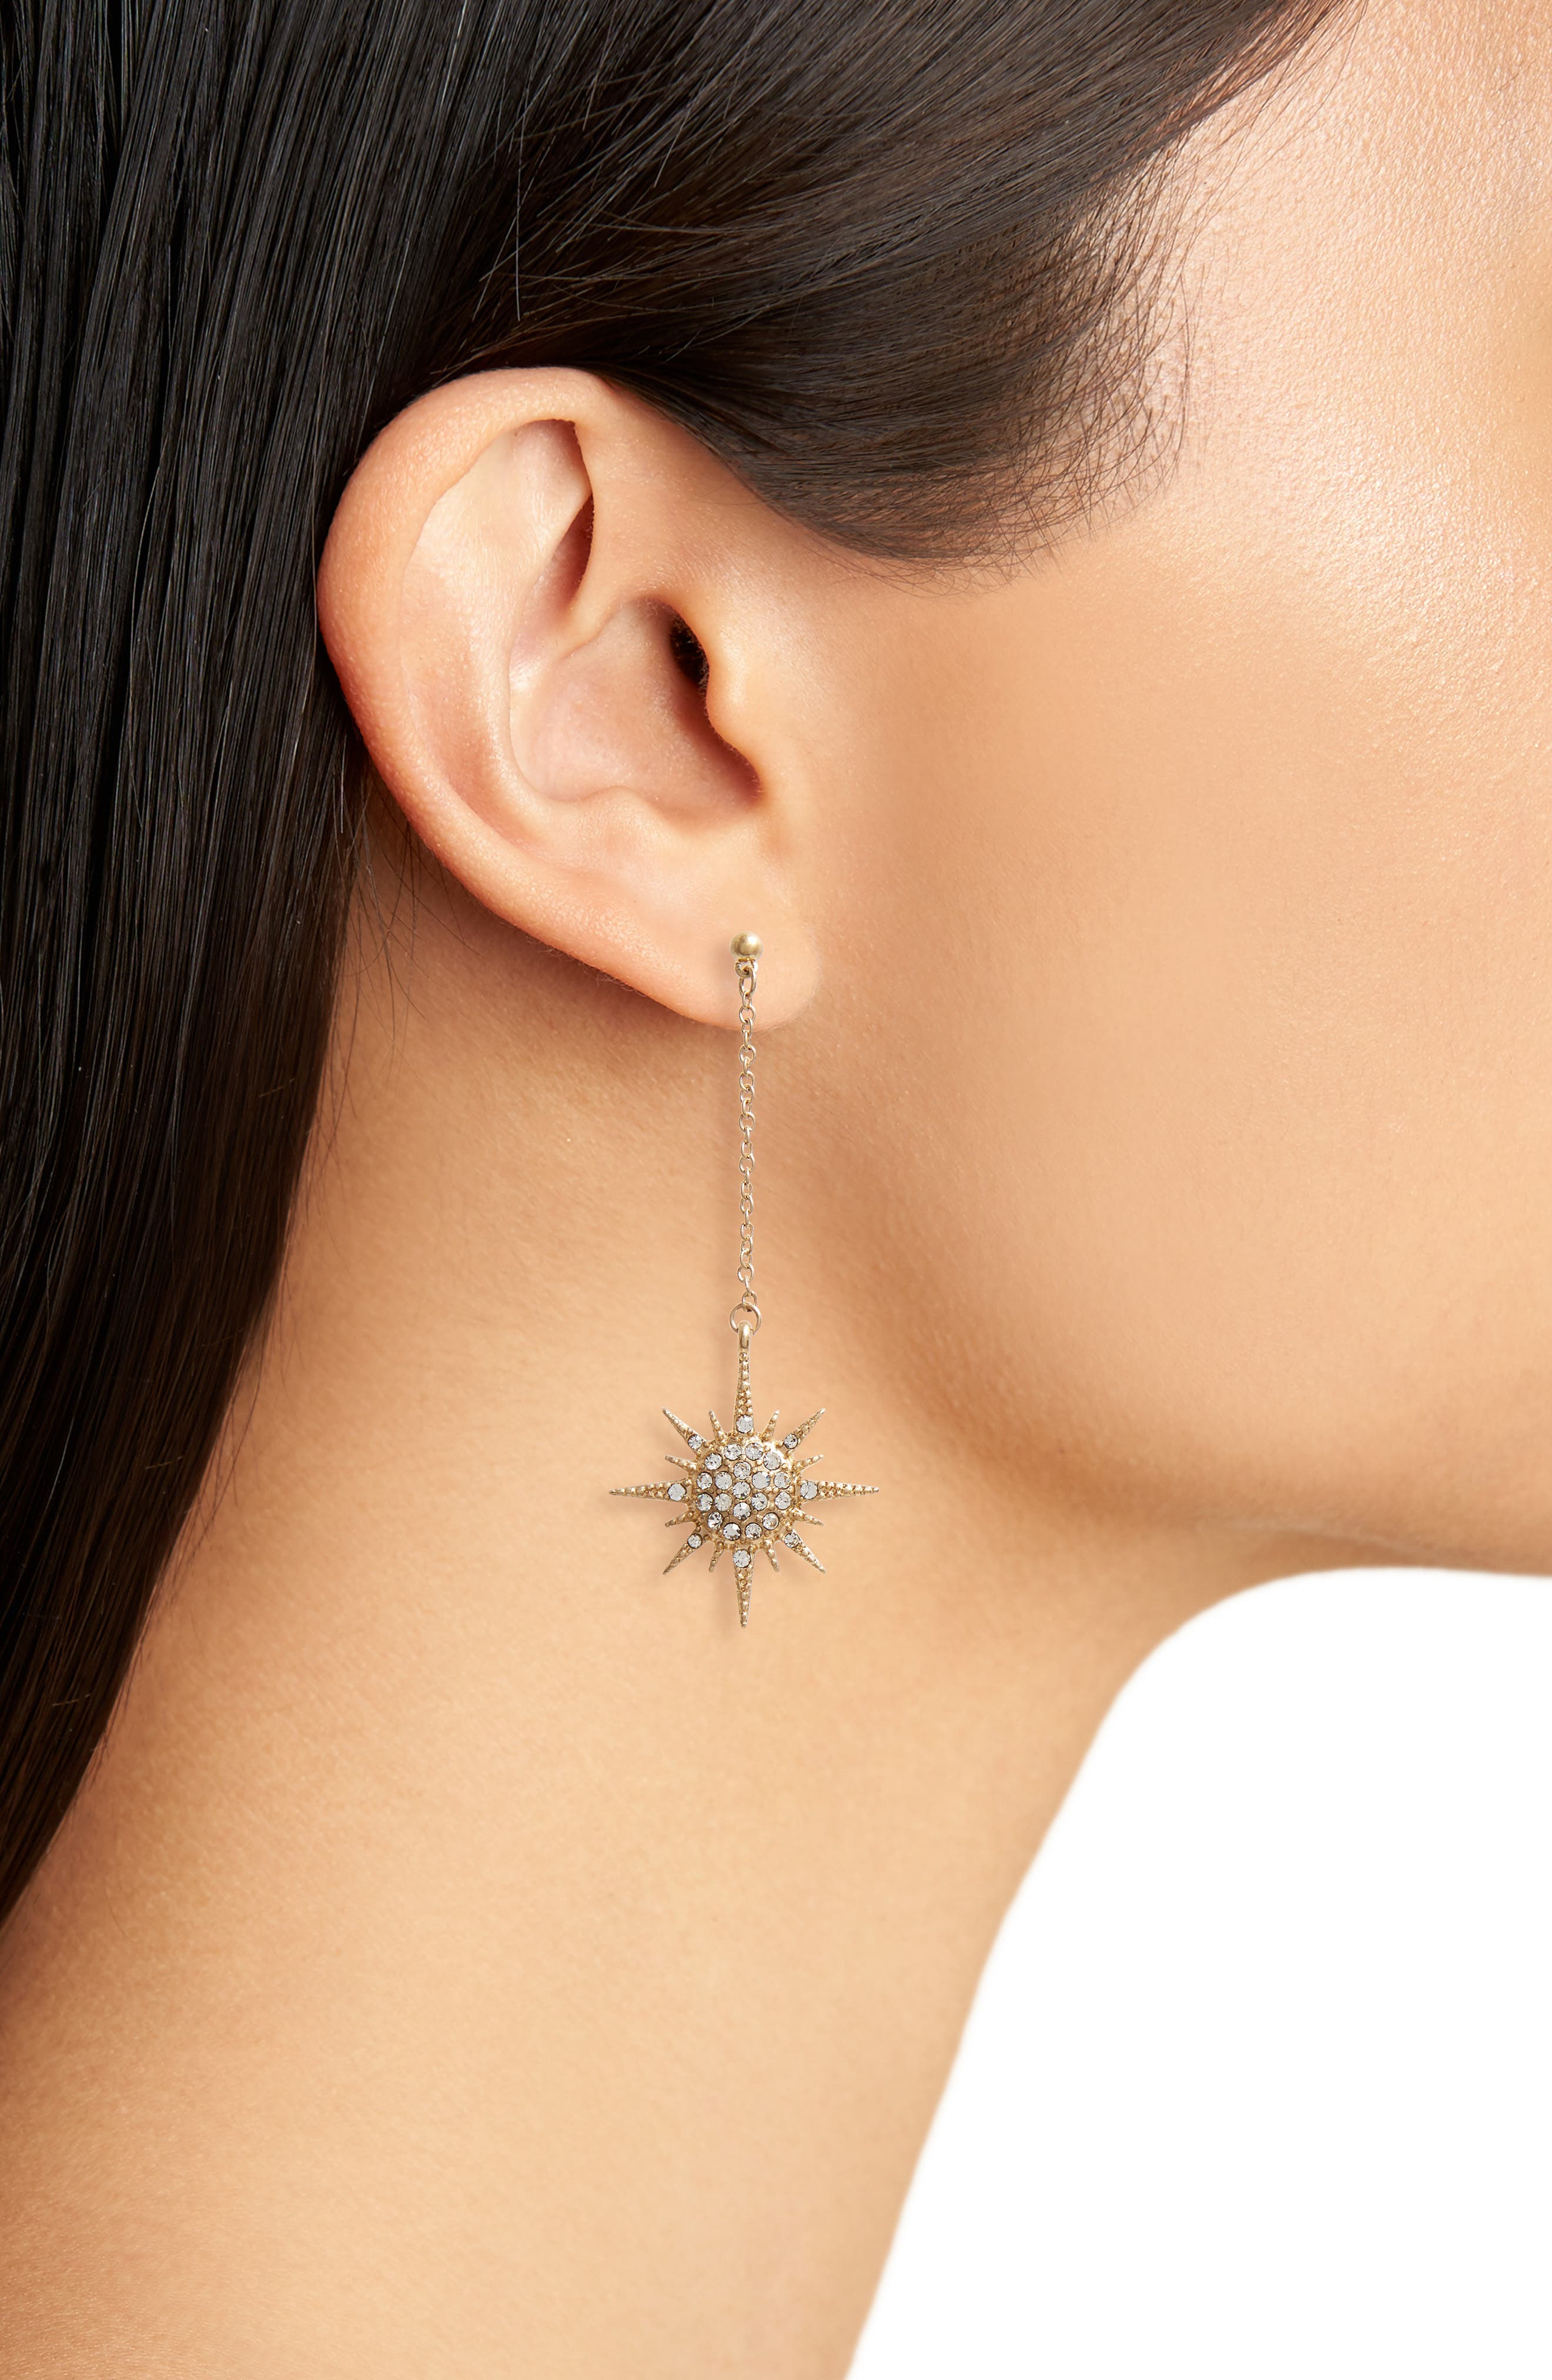 Starburst Crystal Drop Earrings,                             Alternate thumbnail 2, color,                             710